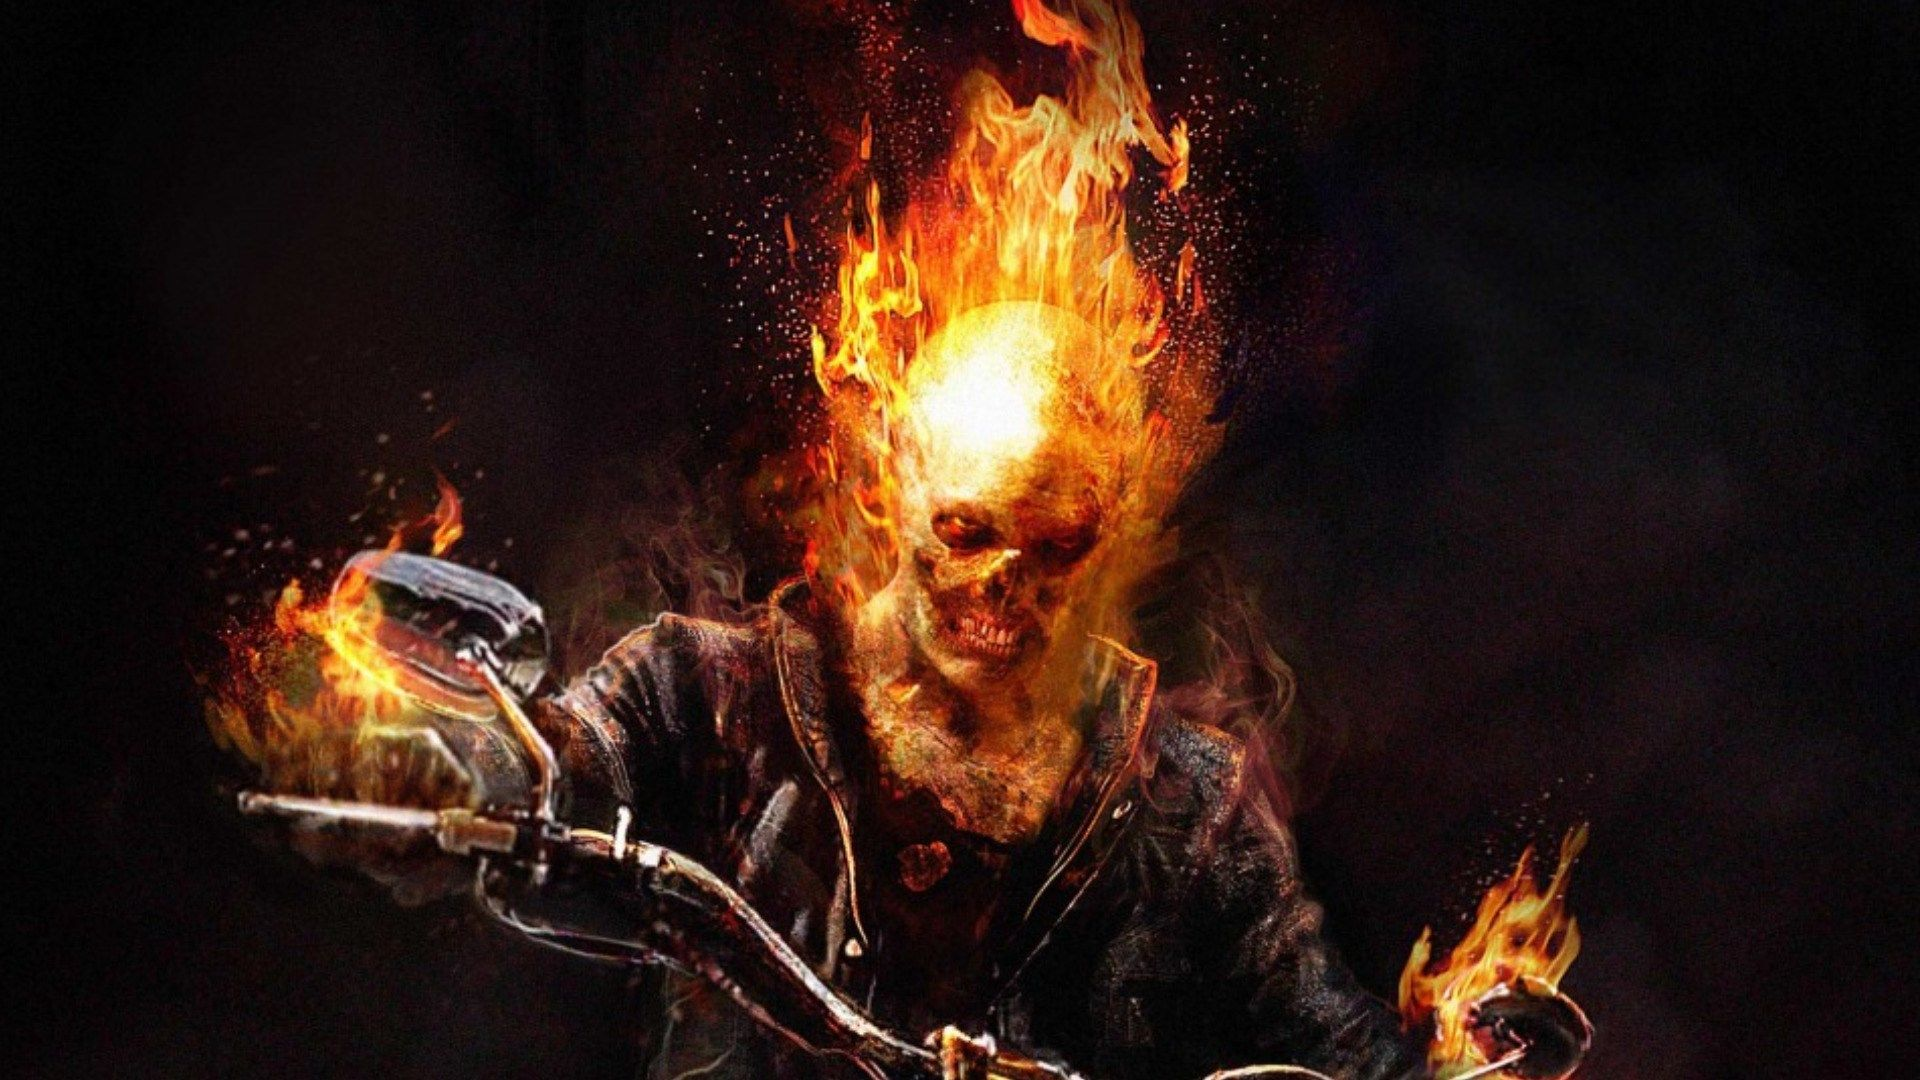 1534833, free computer wallpaper for ghost rider | wallpaperscreator